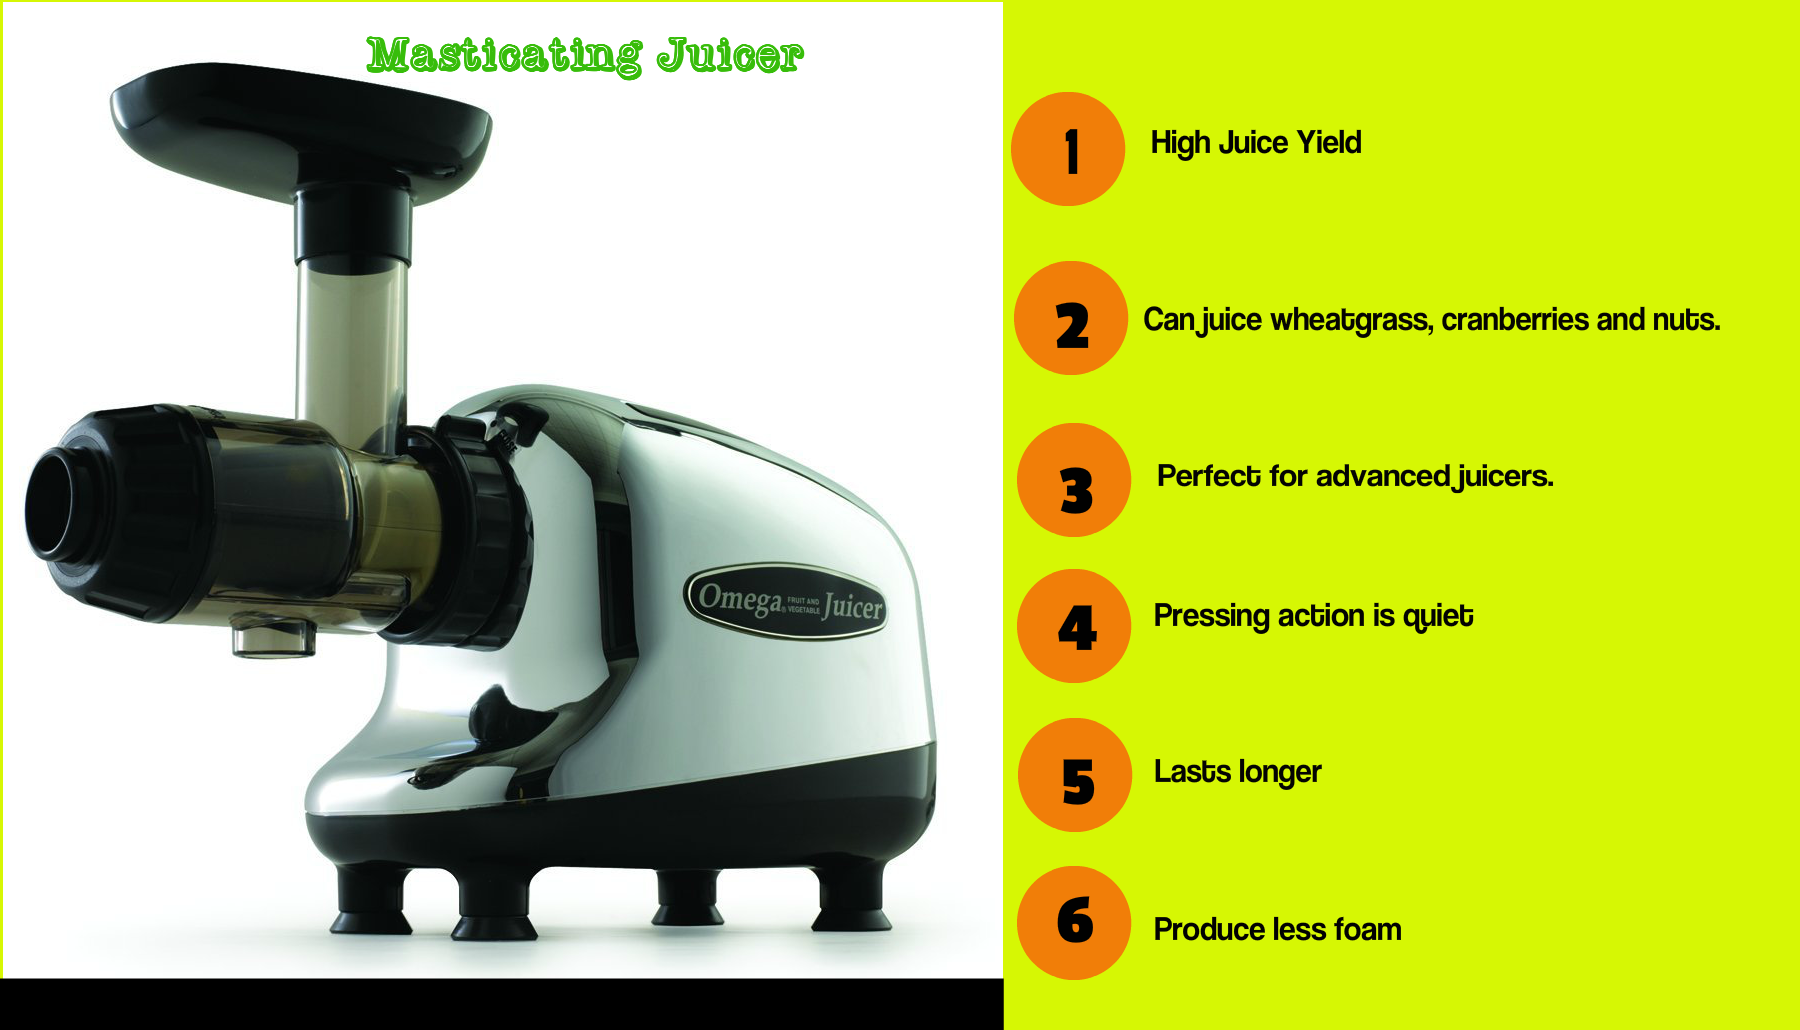 Best Masticating Juicer For Beets : Juicer Buying Guide - Fitness Milestone